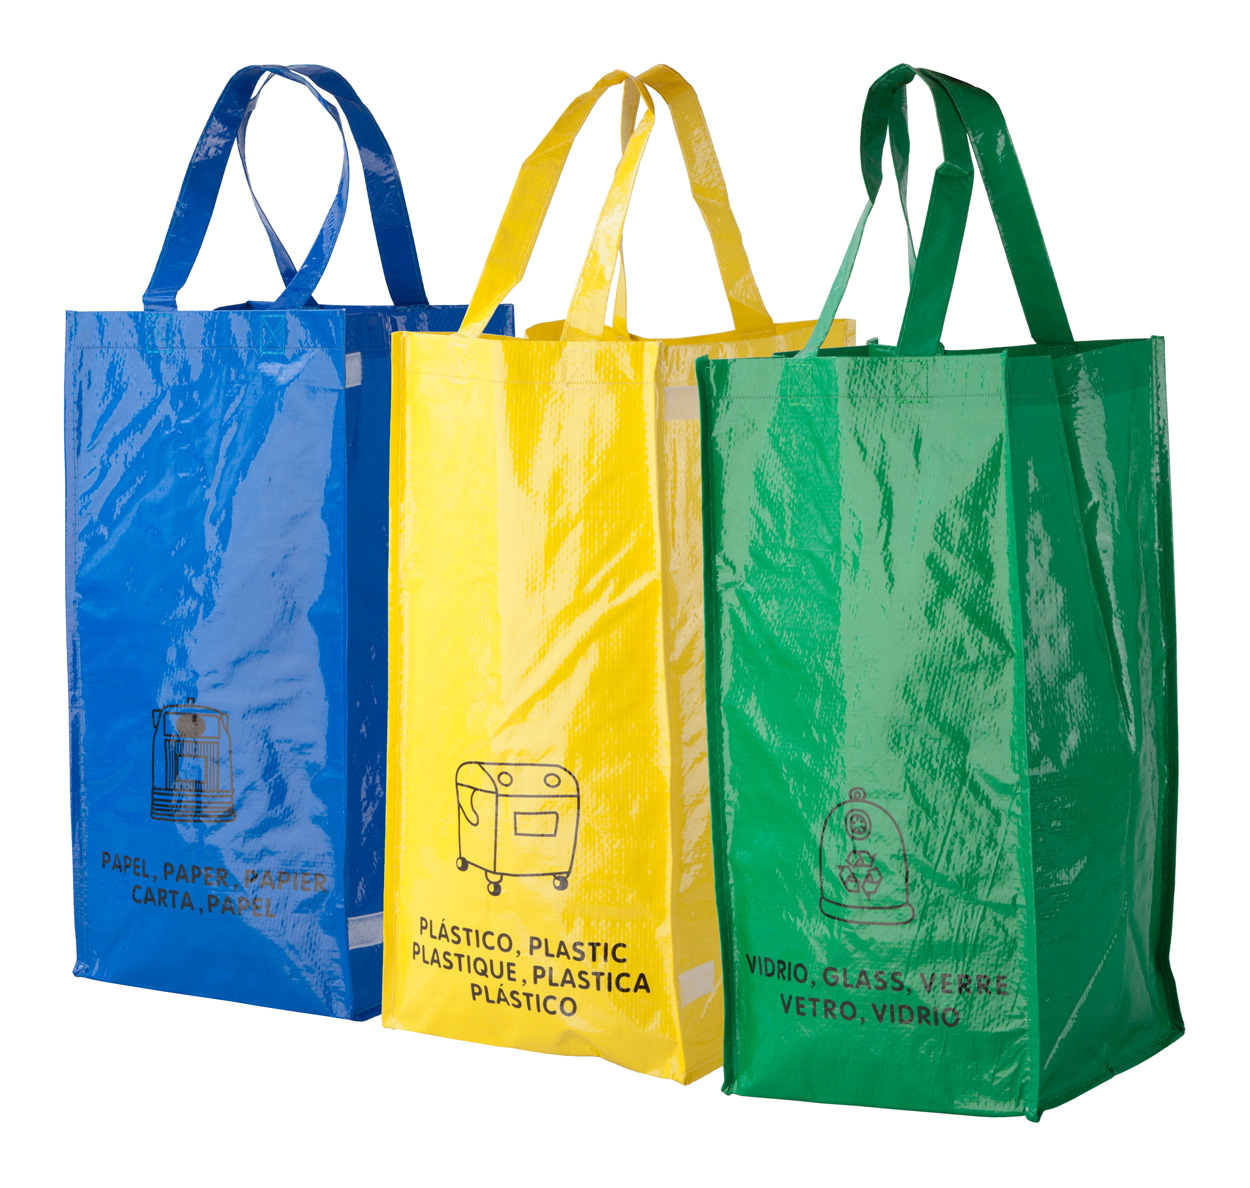 Lopack waste recycling bags